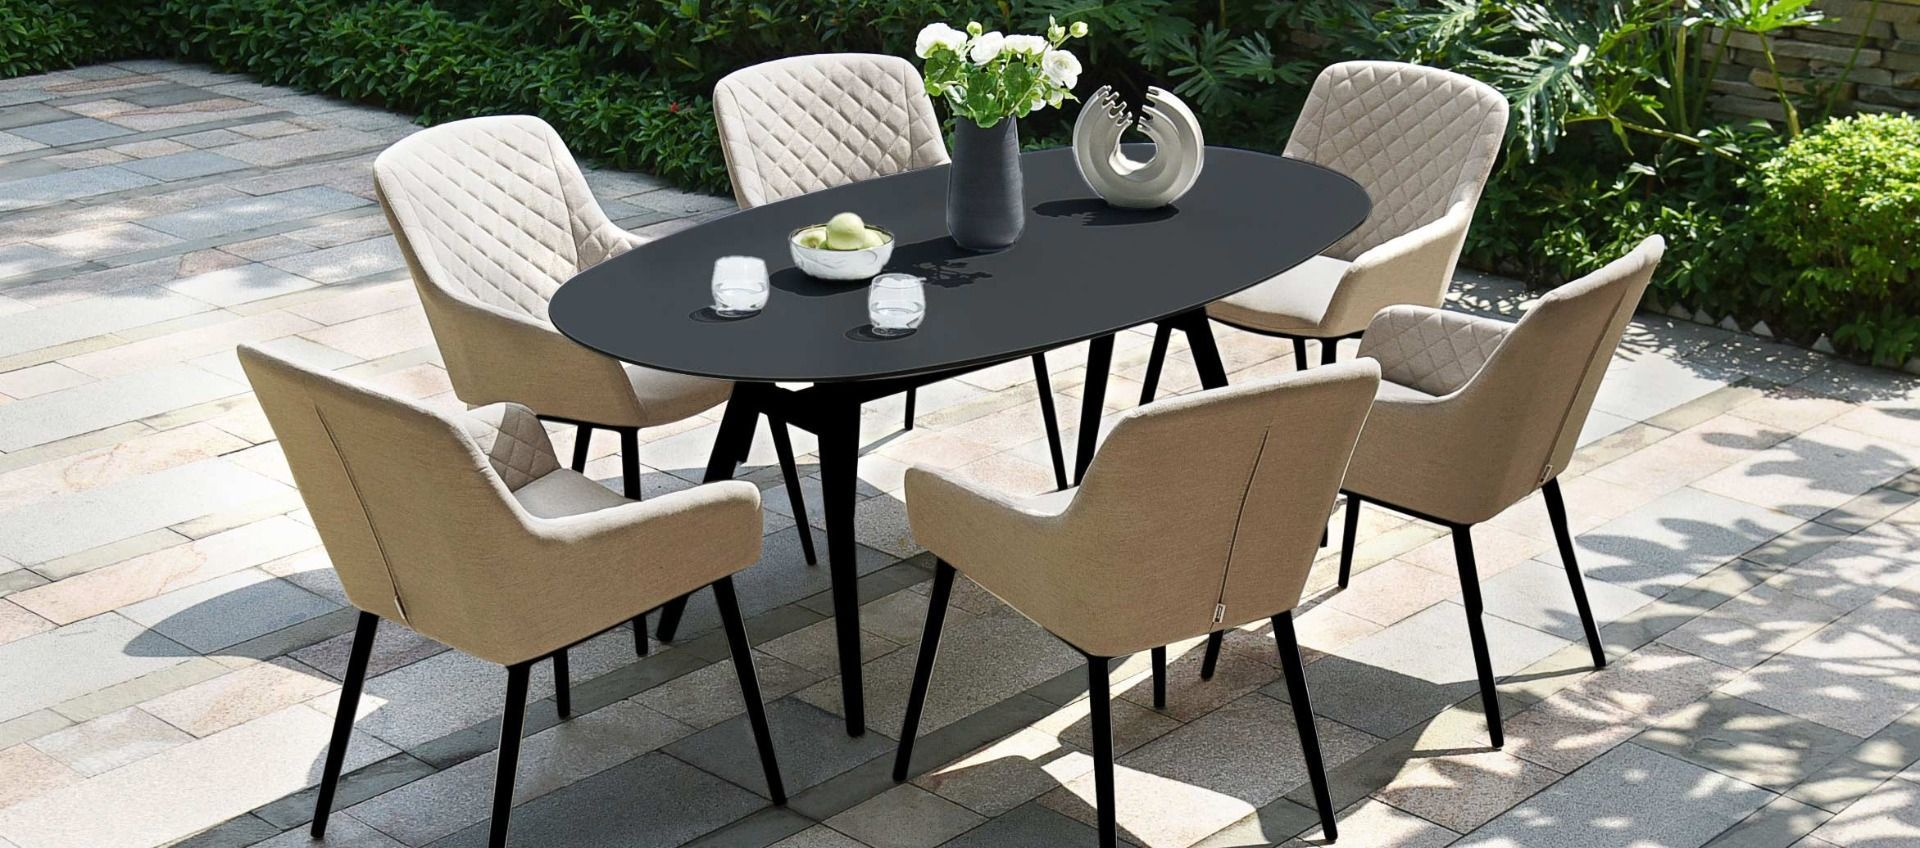 Lot 46 - Zest 6 Seat Oval Outdoor Fabric Dining Set (Taupe) *BRAND NEW*